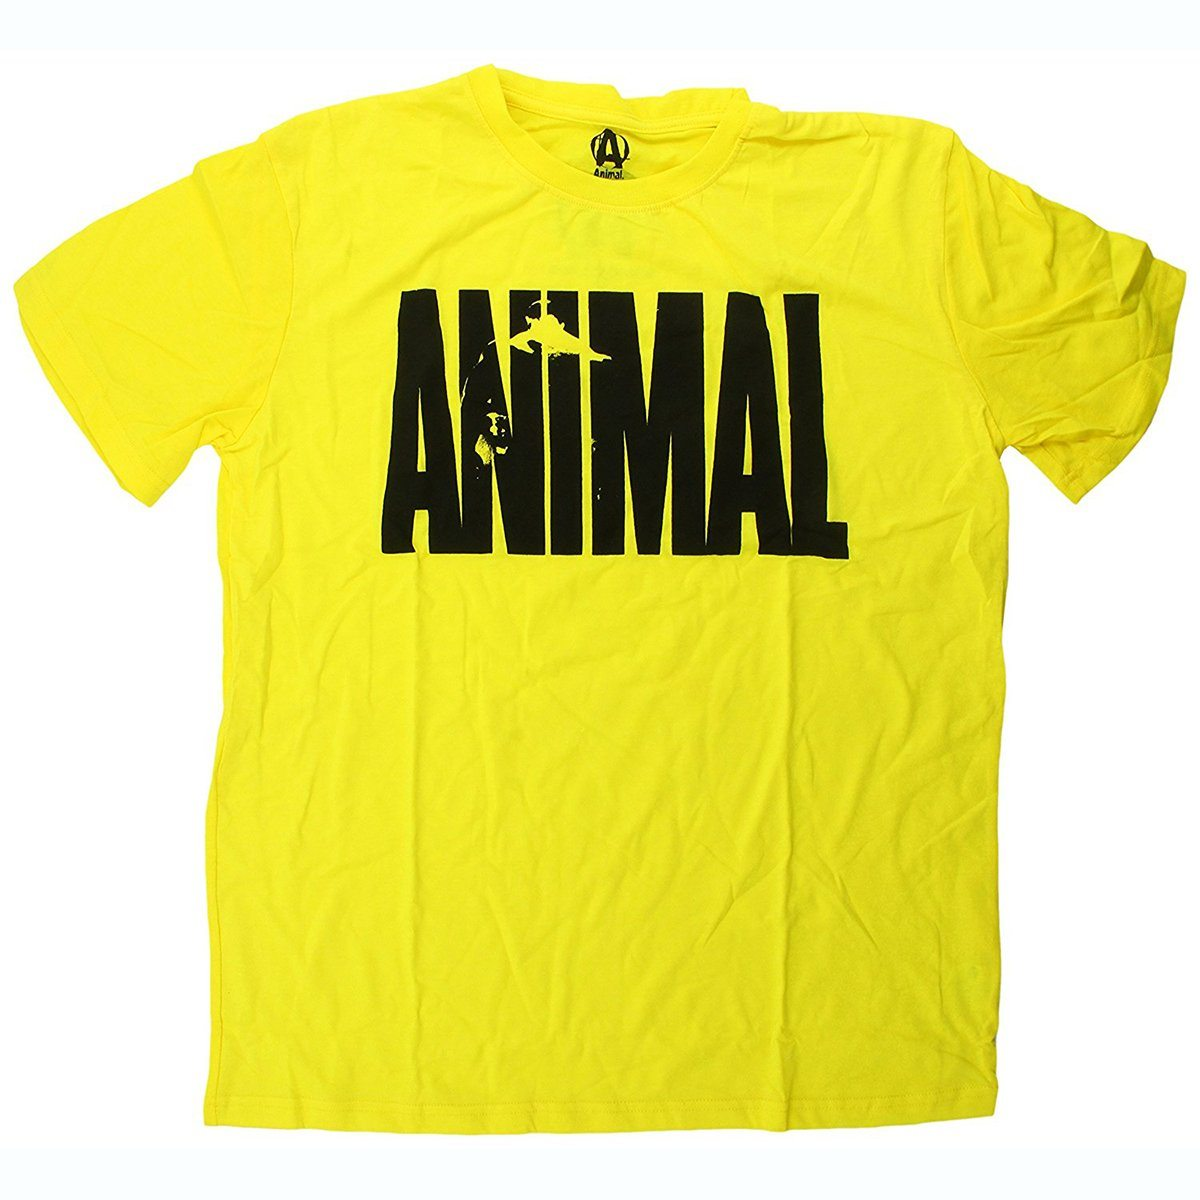 Universal Animal Iconic Tee Yellow Large Fitness Accessories and Apparel Universal  (1058209267755)